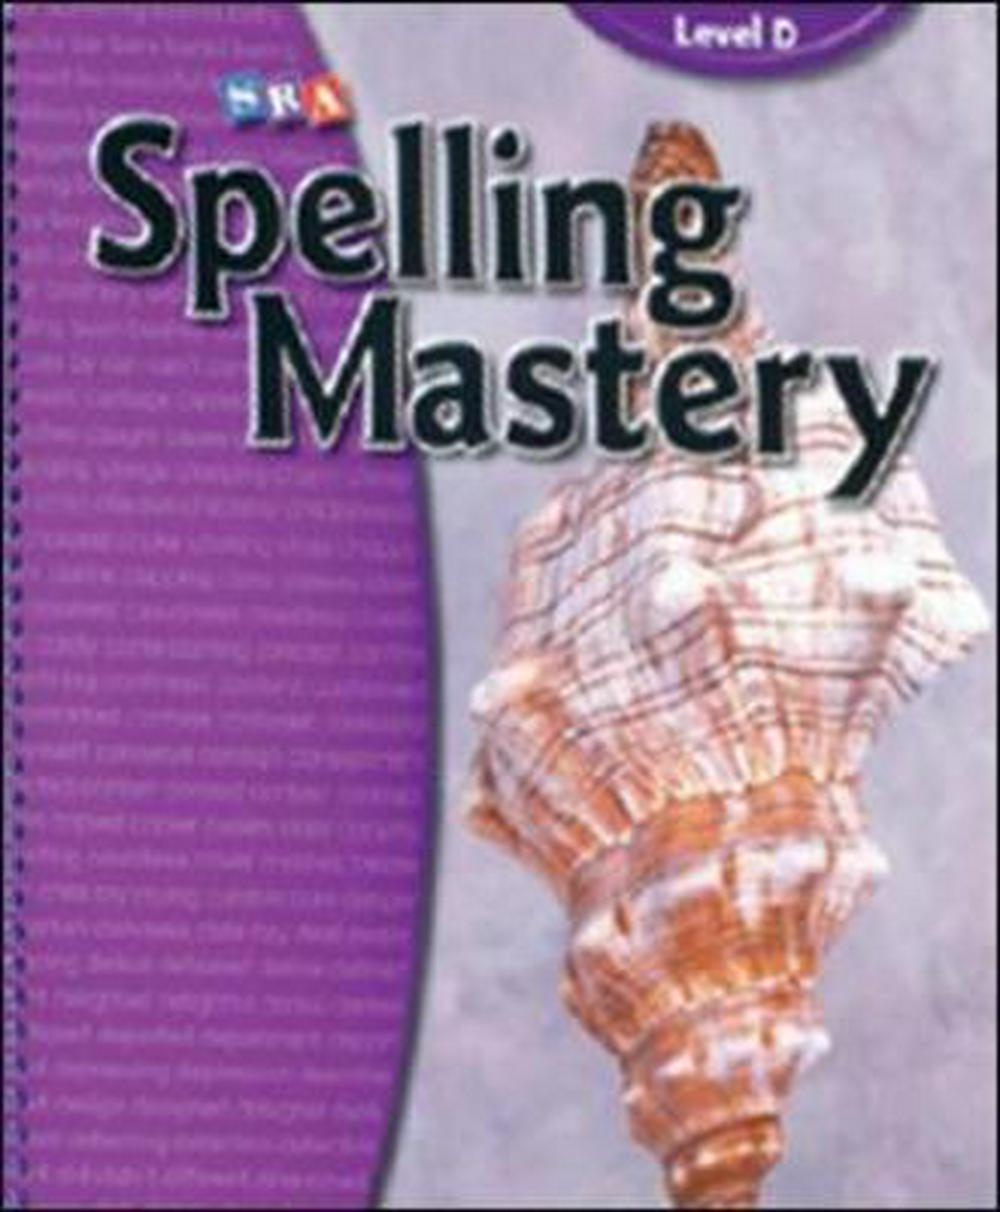 Spelling Mastery - Teacher Materials - Level D